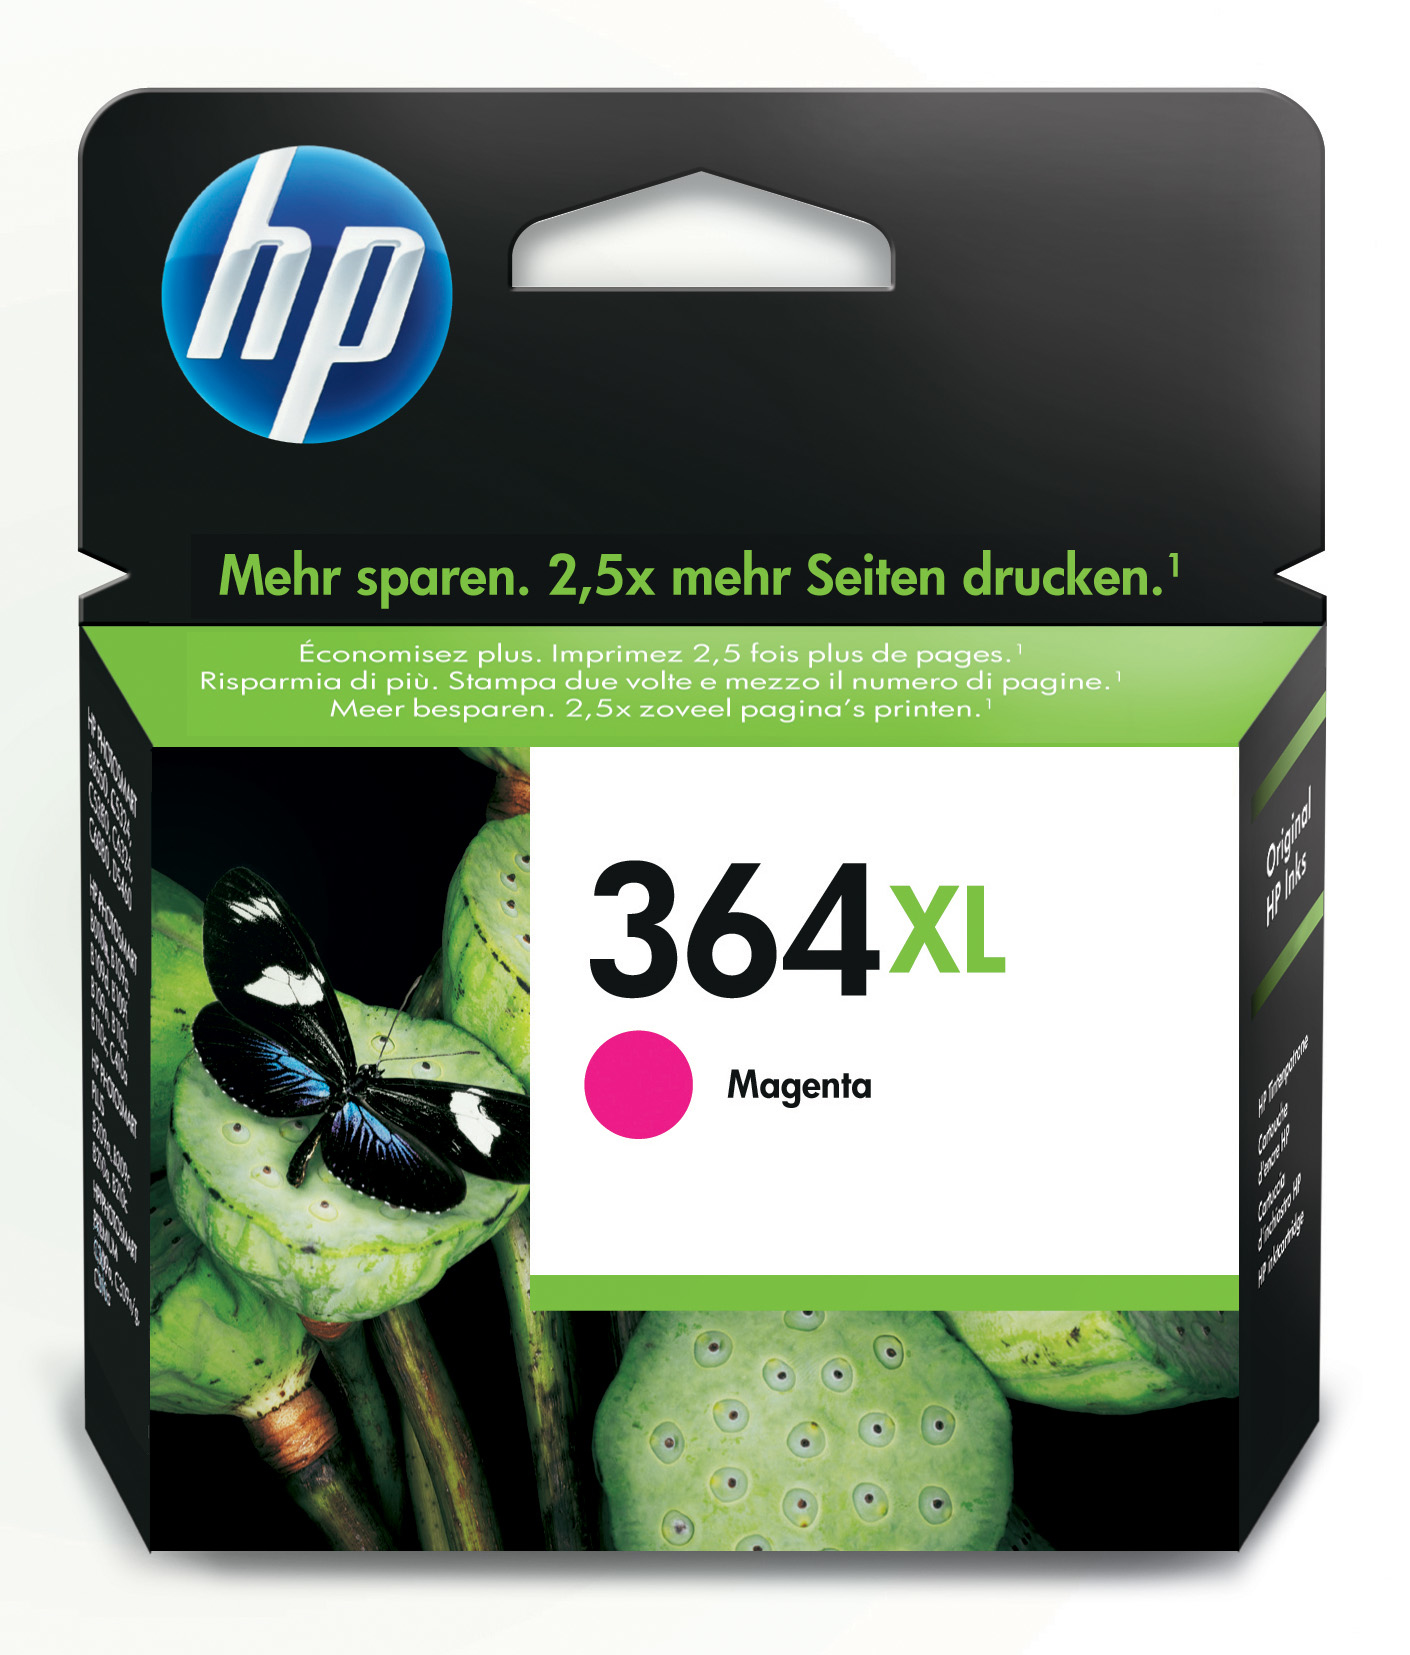 HP 364XL Magenta Ink Cartridge Original 1 pieza(s)